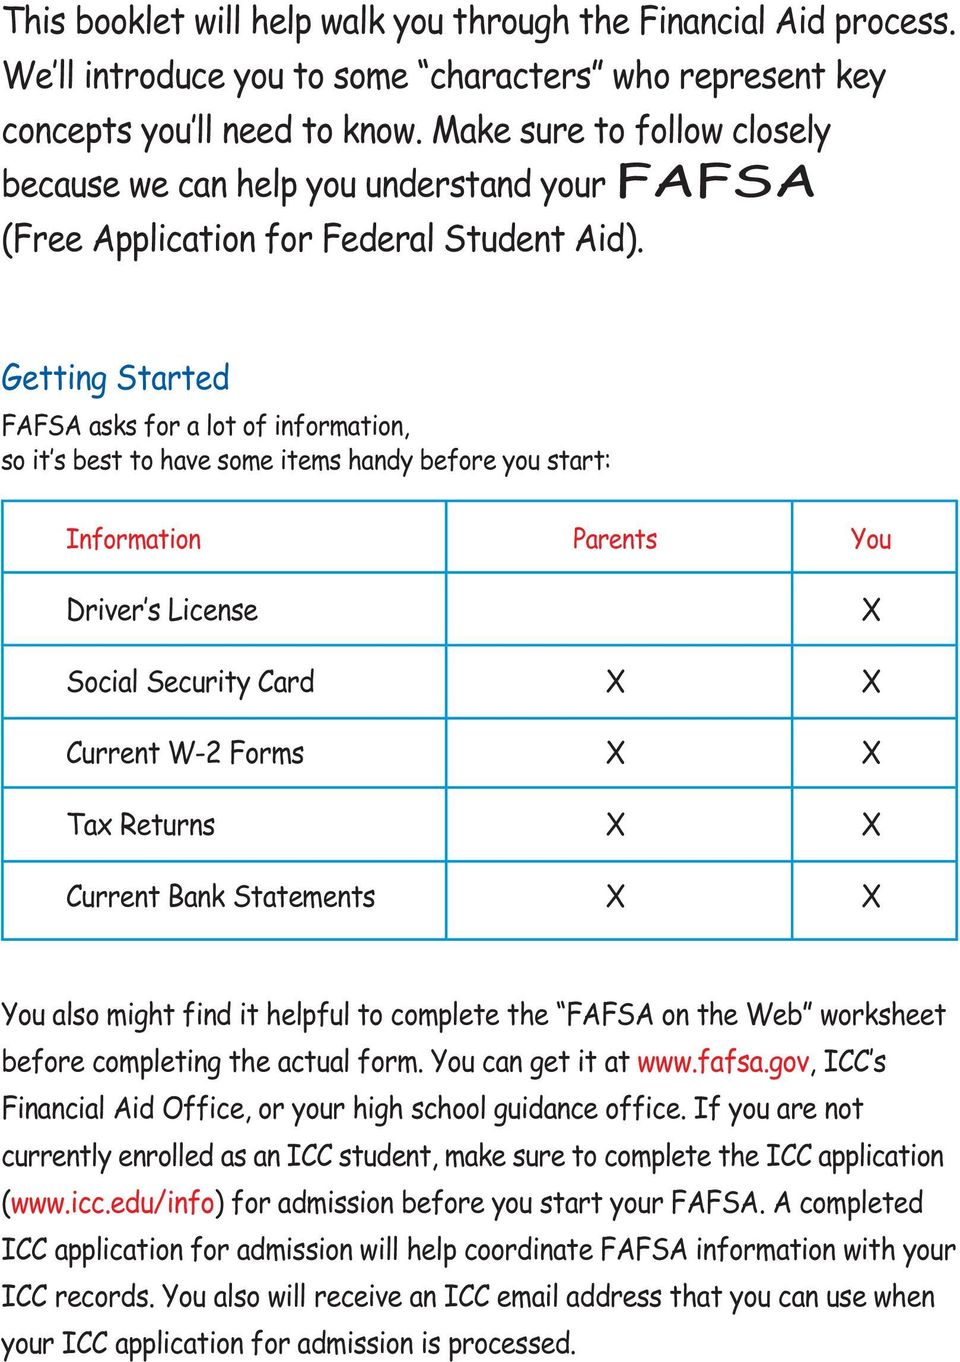 Getting Started FAFSA asks for a lot of information, so it s best to have some items handy before you start: Information Parents You Driver s License X Social Security Card X X Current W-2 Forms X X